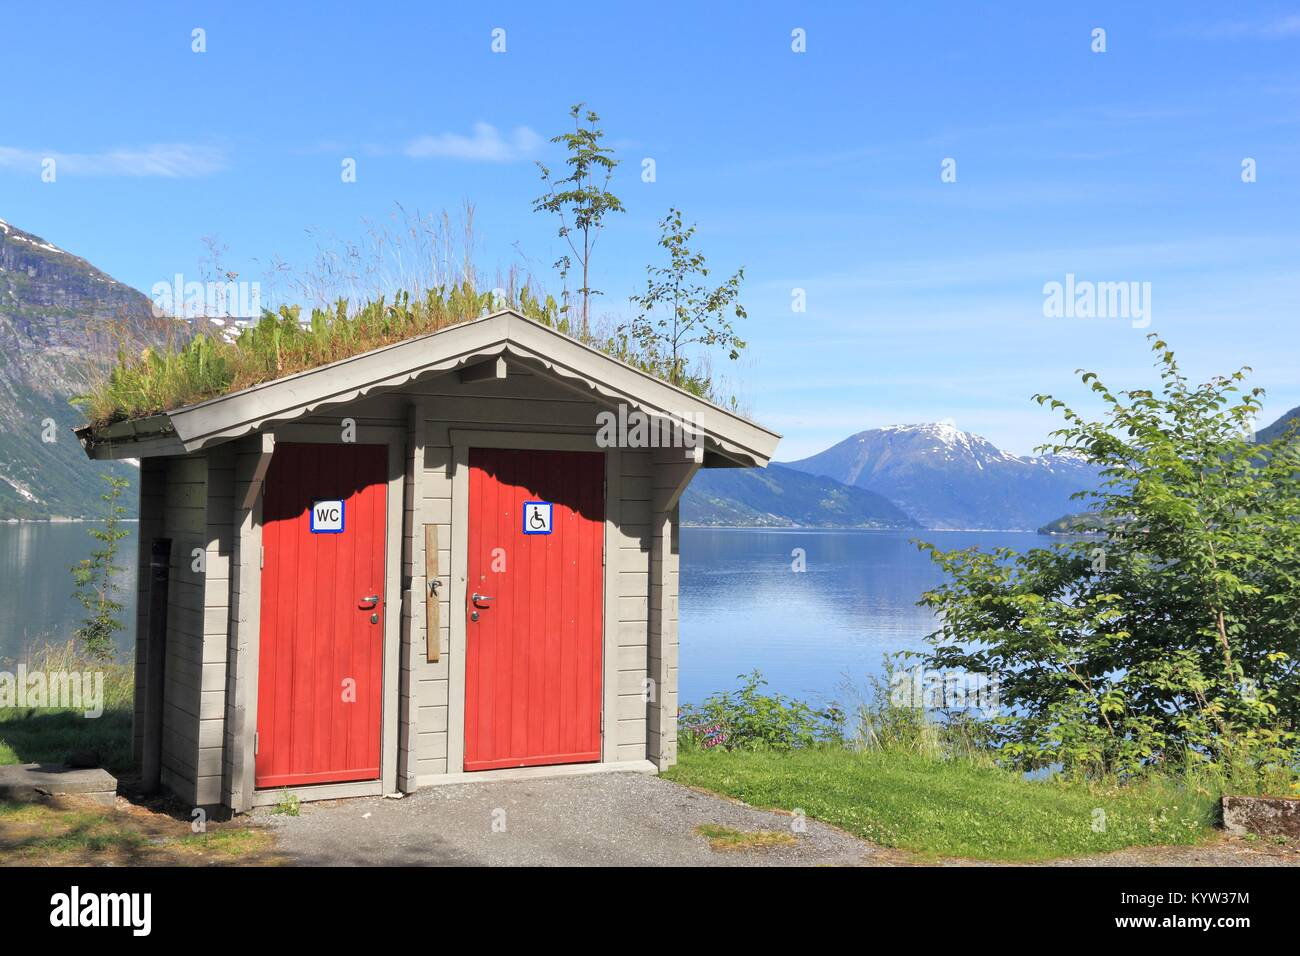 Tourist restroom at a rest area next to a fiord in Norway. Hardangerfjord area. - Stock Image